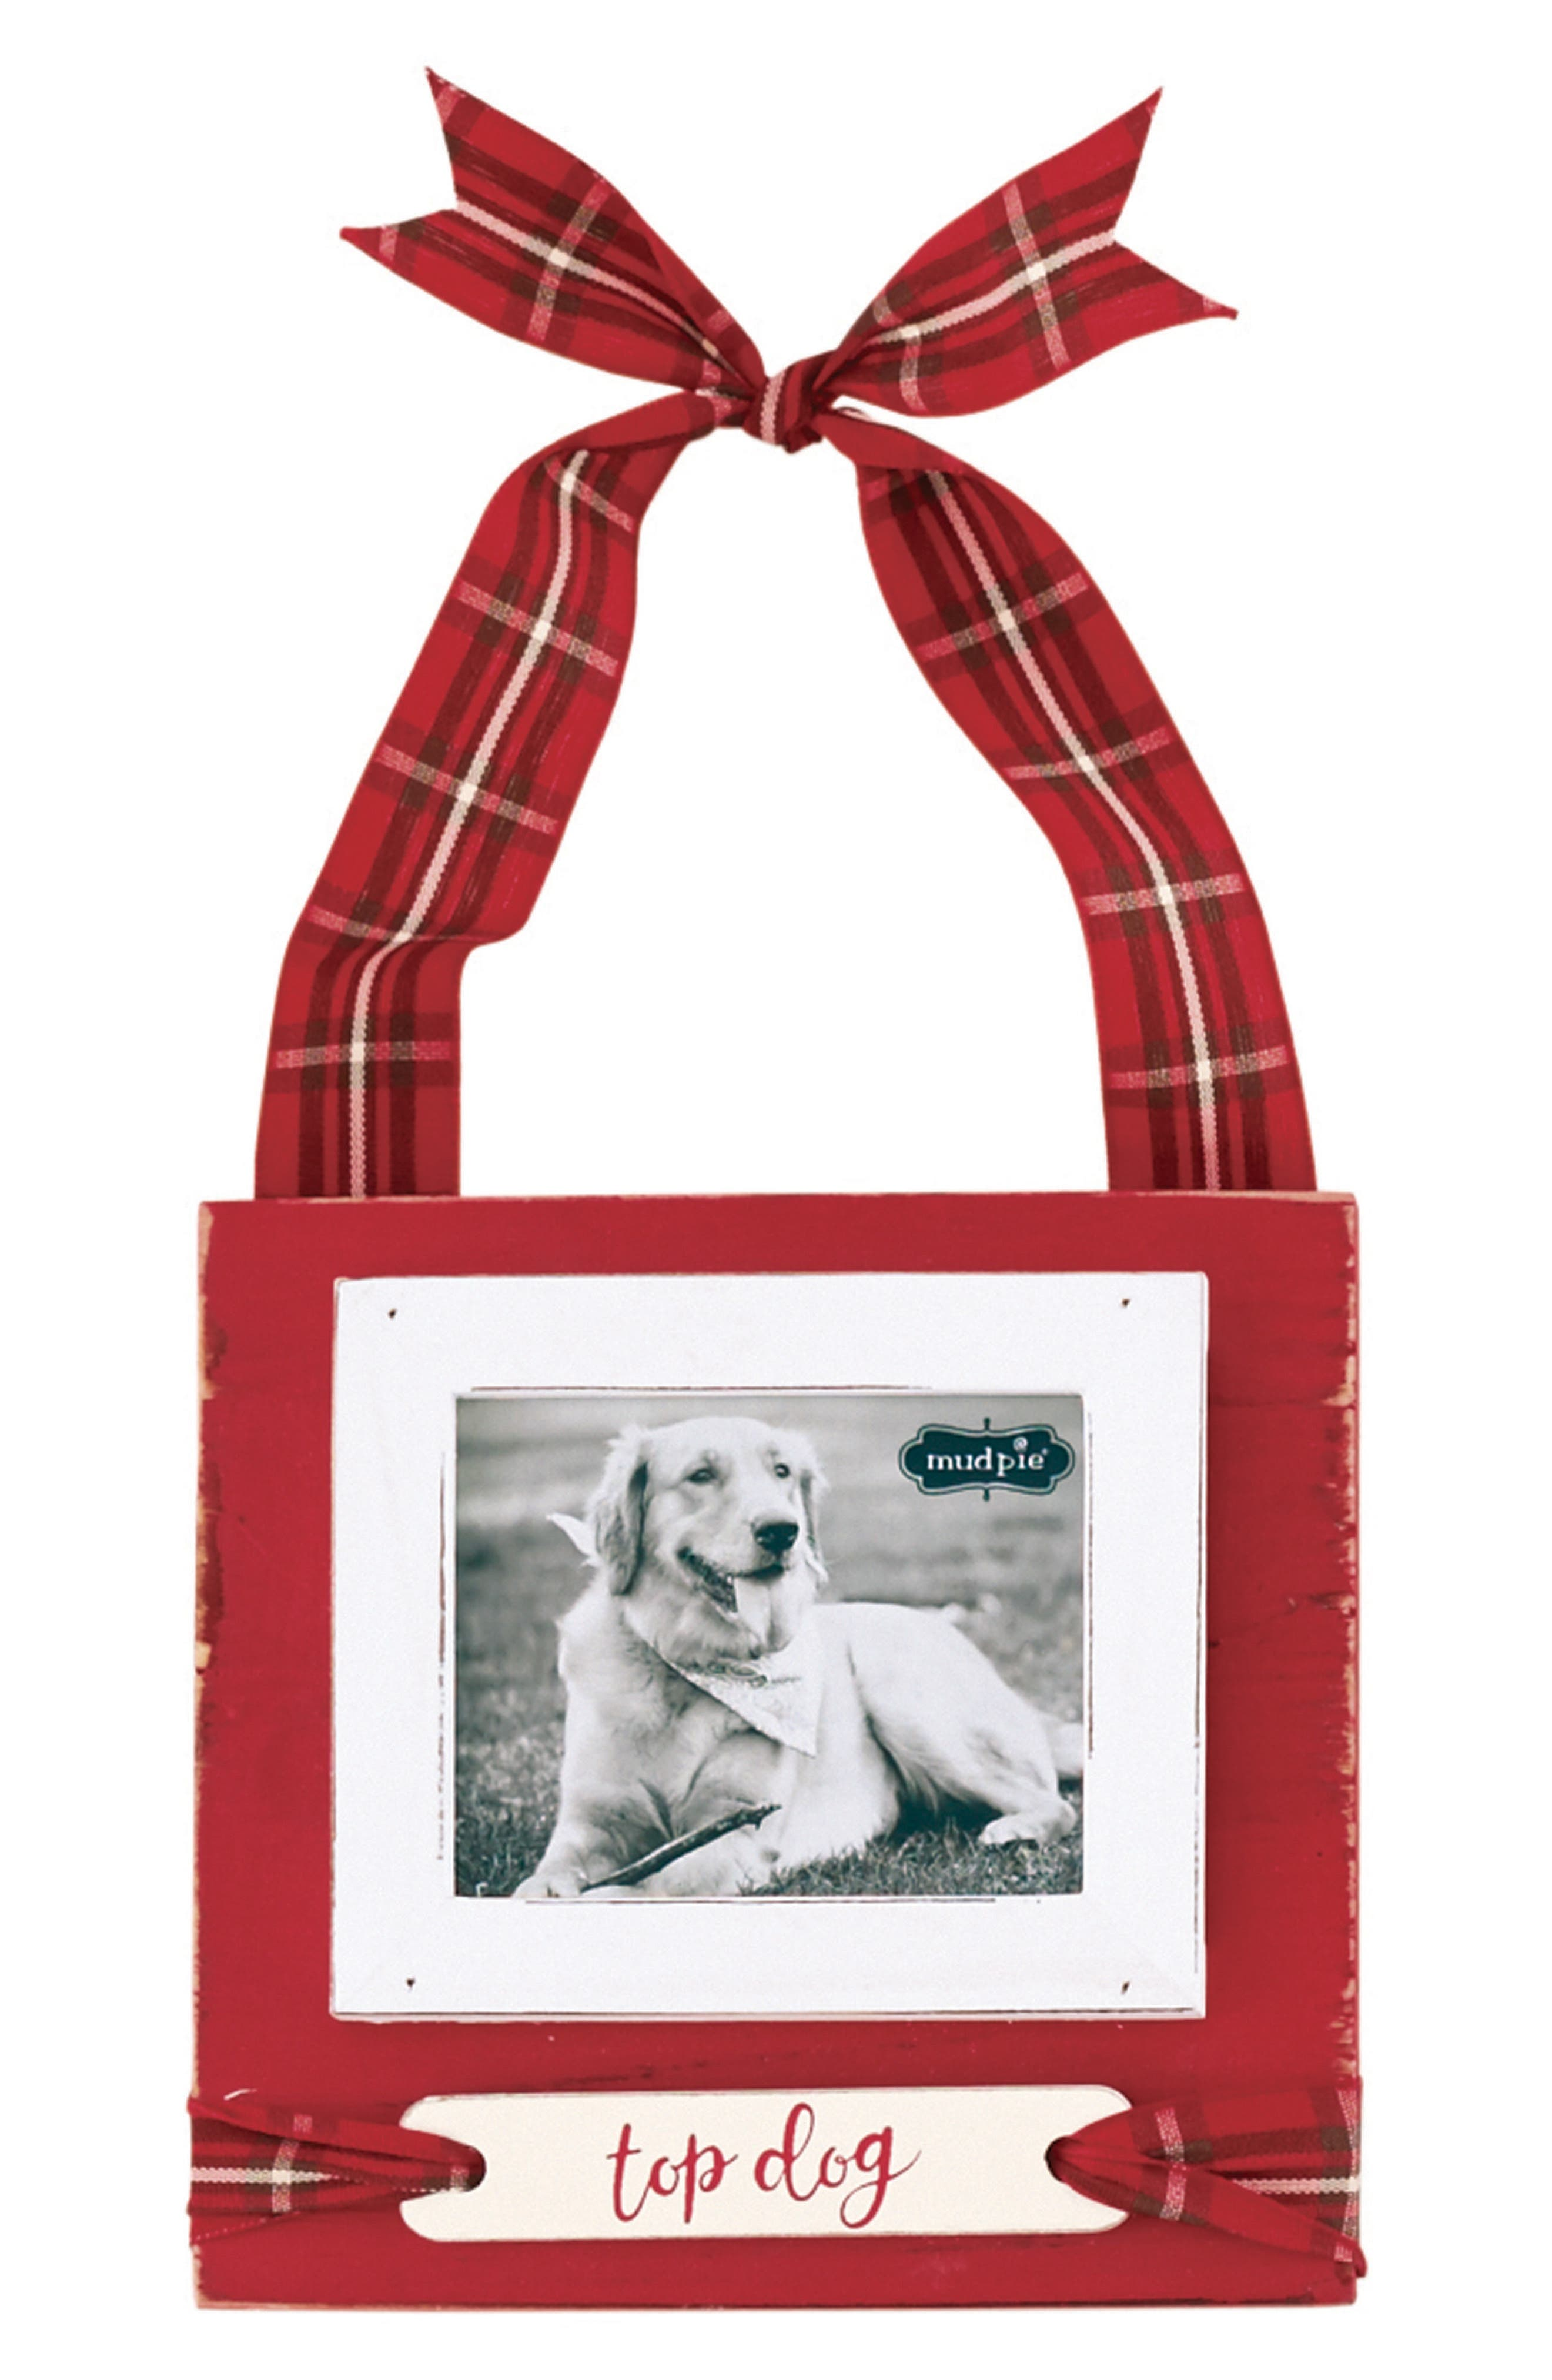 Top Dog Frame Ornament,                         Main,                         color, White/ Red